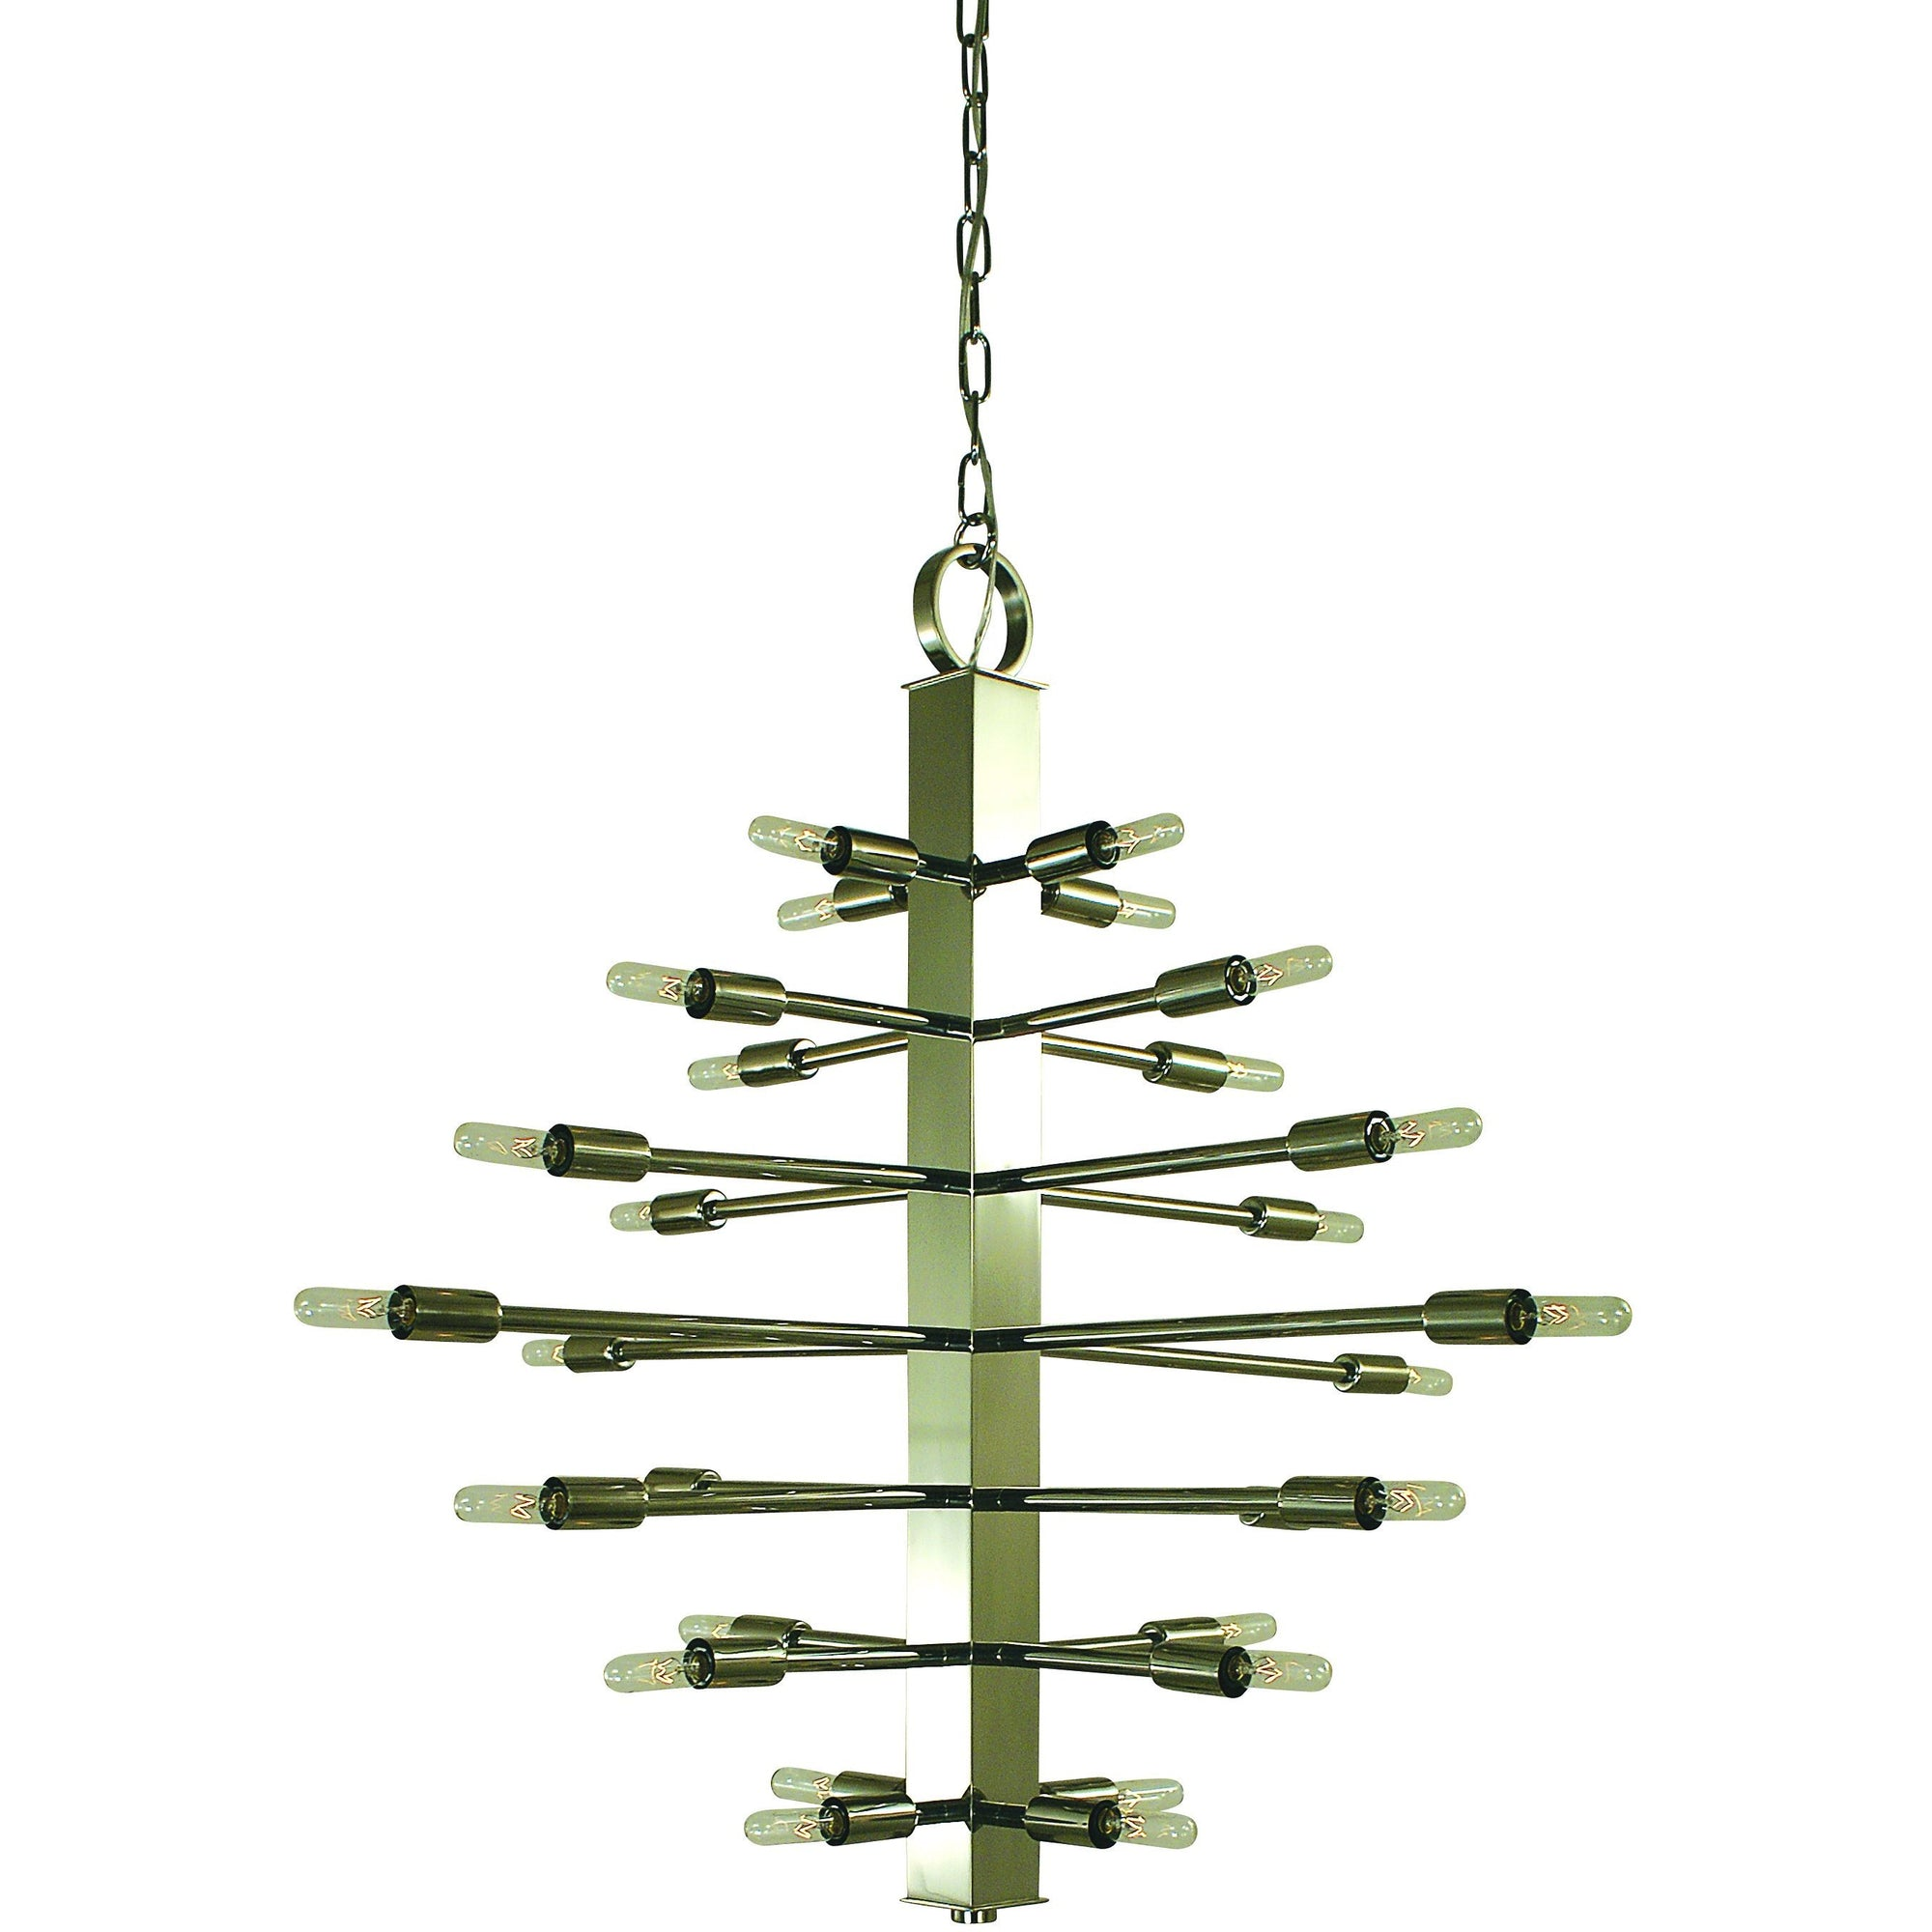 Framburg Foyer Chandeliers Polished Nickel 28-Light Polished Nickel Simone Chandelier by Framburg 4408